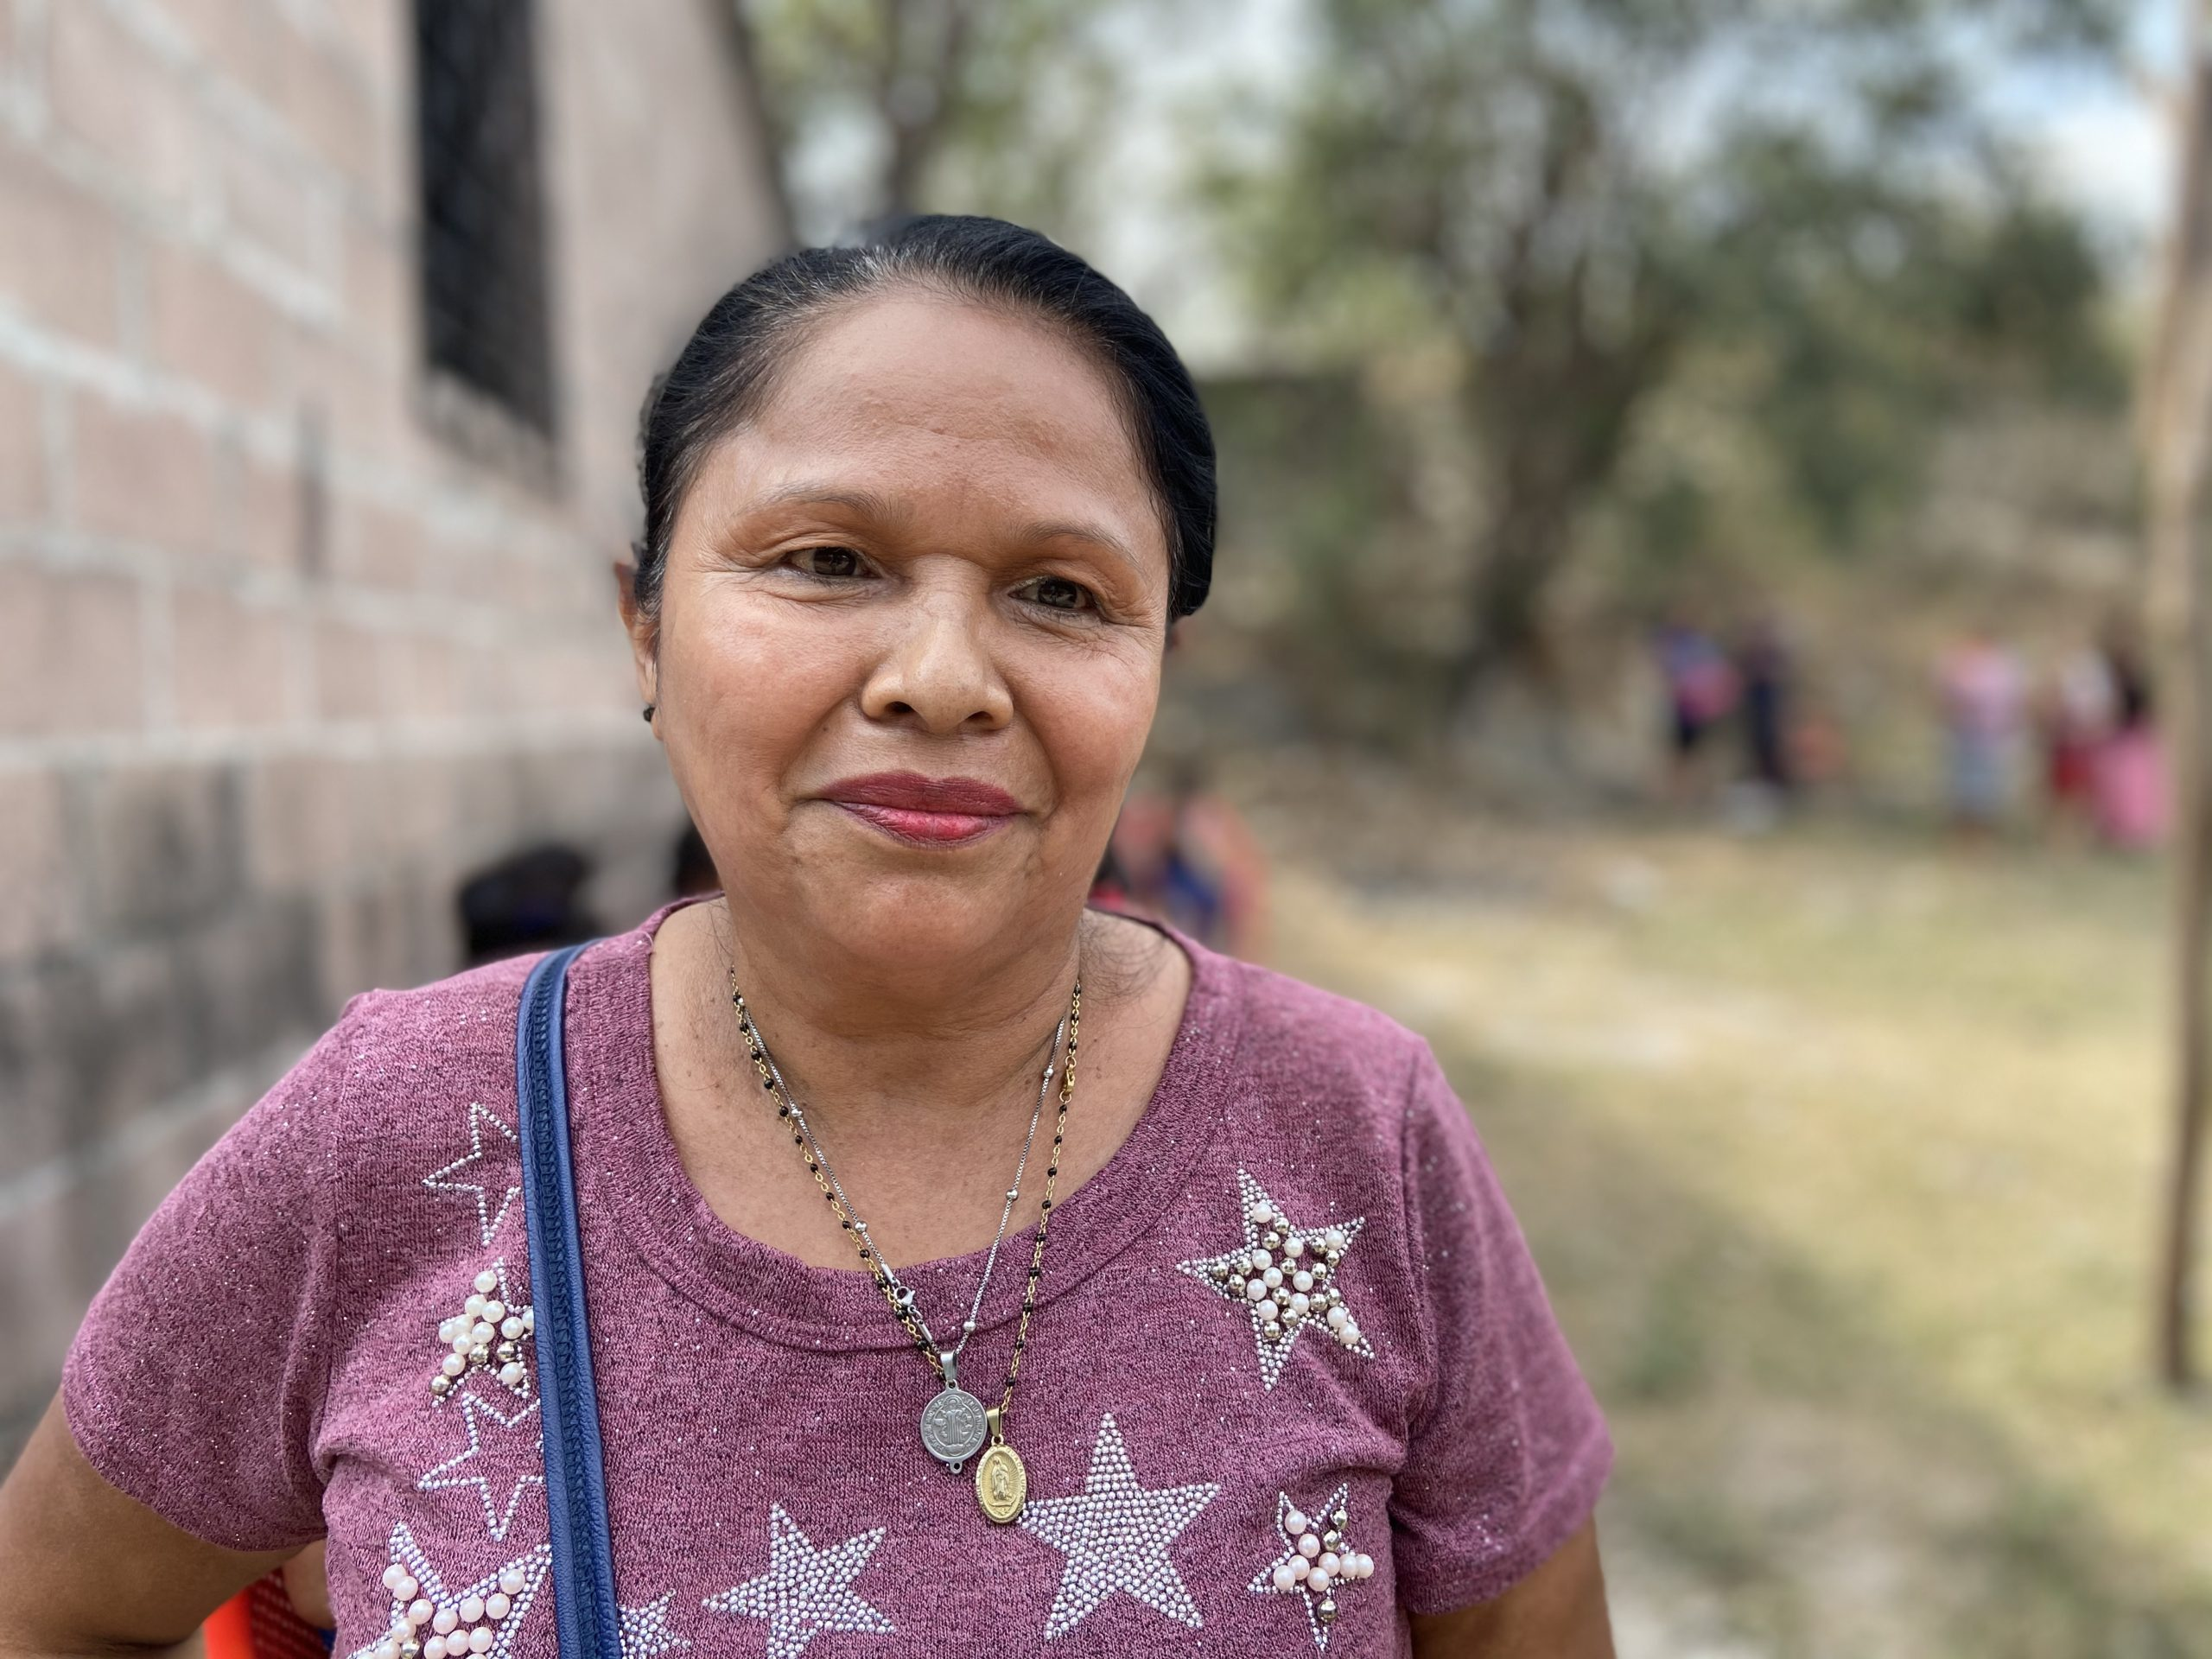 Faith And Civic Leaders From Five Countries Call For Large-scale Investment In Community-led Development In Central America